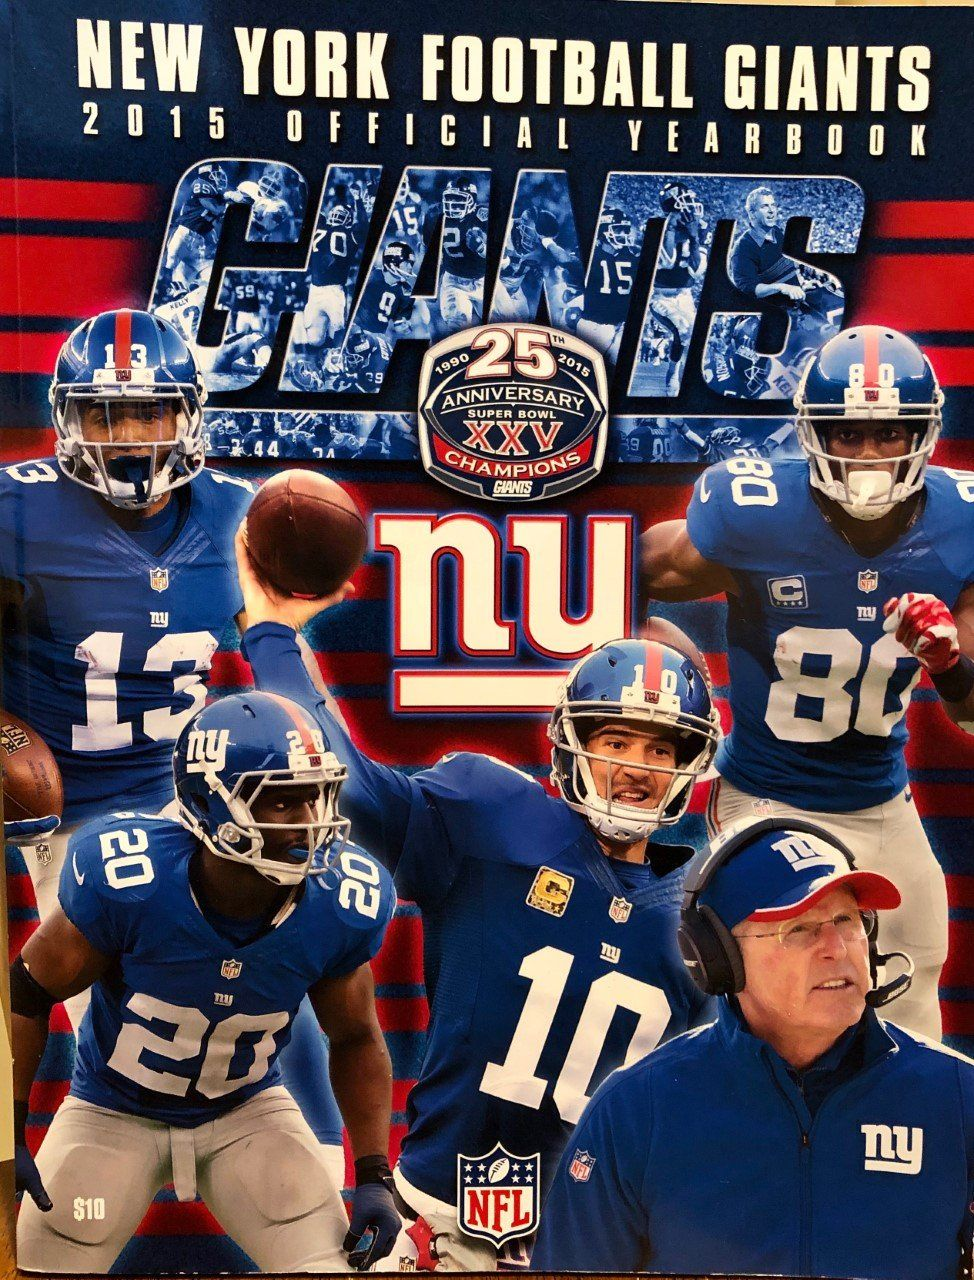 Ny Football Giants 2015 Official Yearbook Nfl Program Magazine In 2020 Football New York Football Nfl